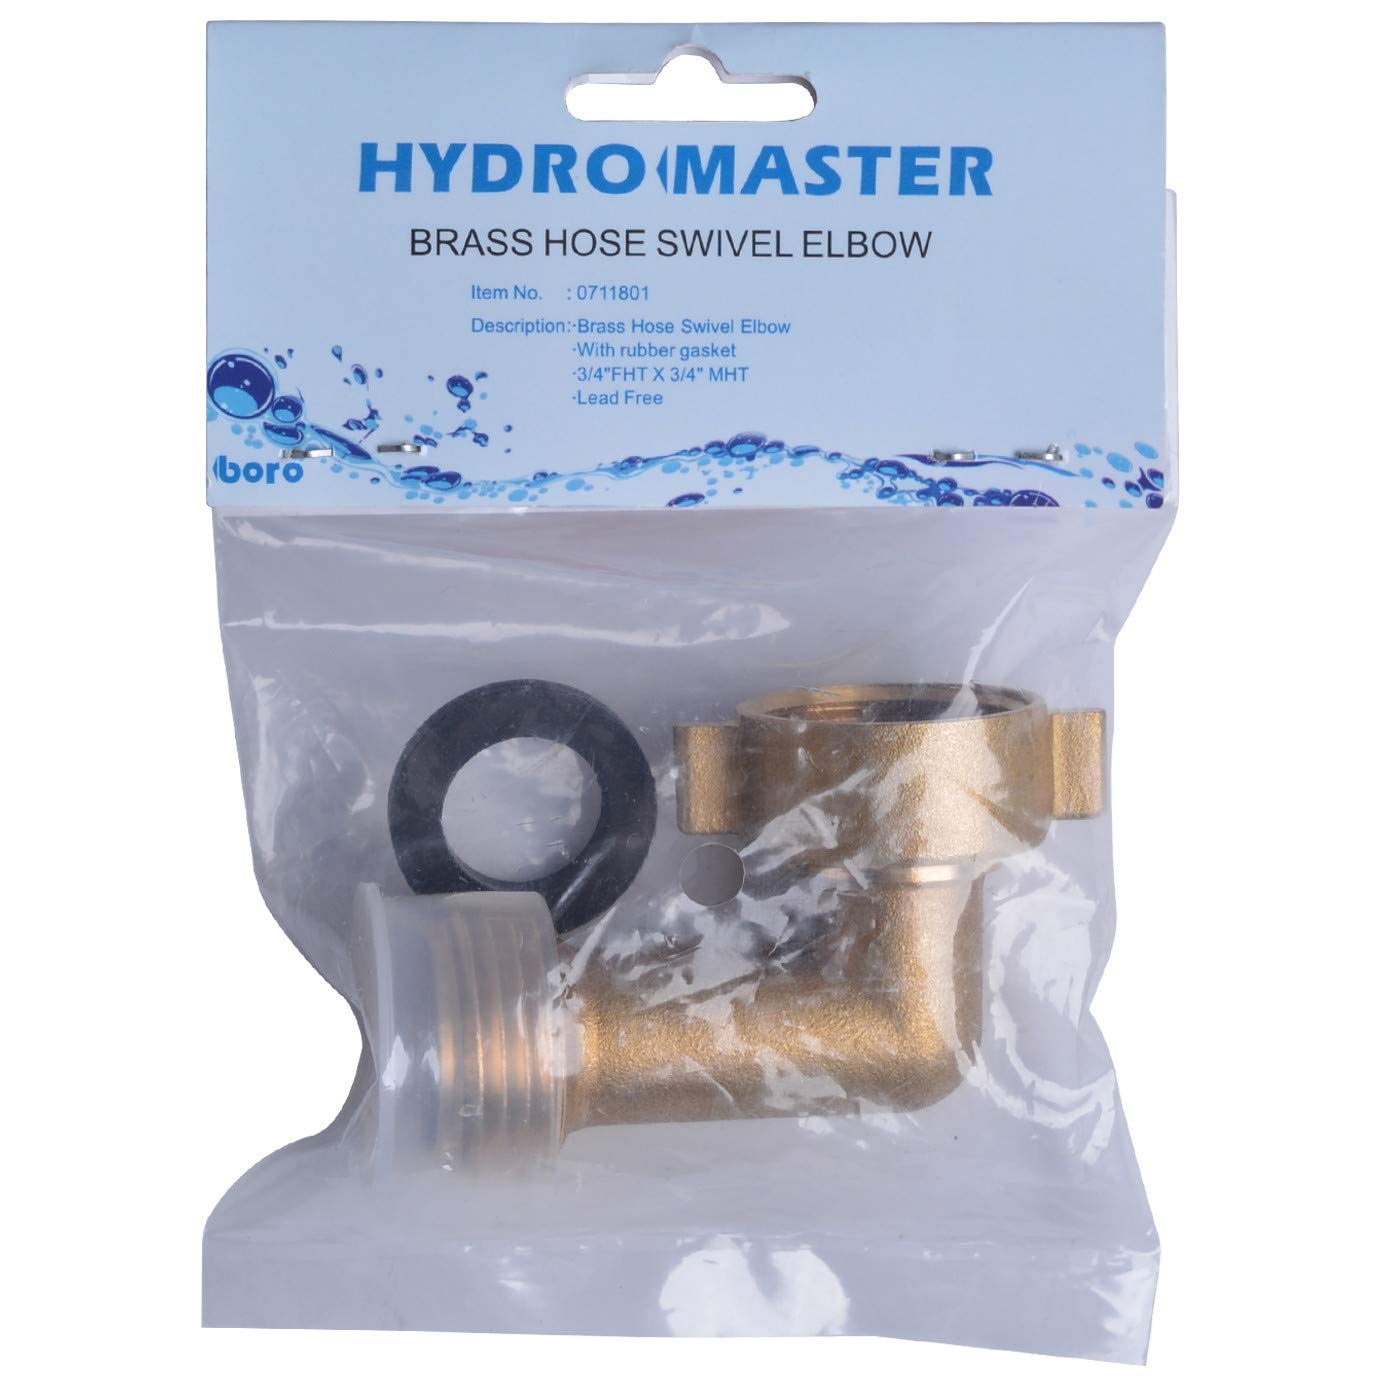 "B07S85ZZ4P HYDRO MASTER 0711801 90 Degree Garden Hose Elbow with Lead Free Brass 3/4"" FHT x 3/4\"" MHT 612UiOvBAuL"